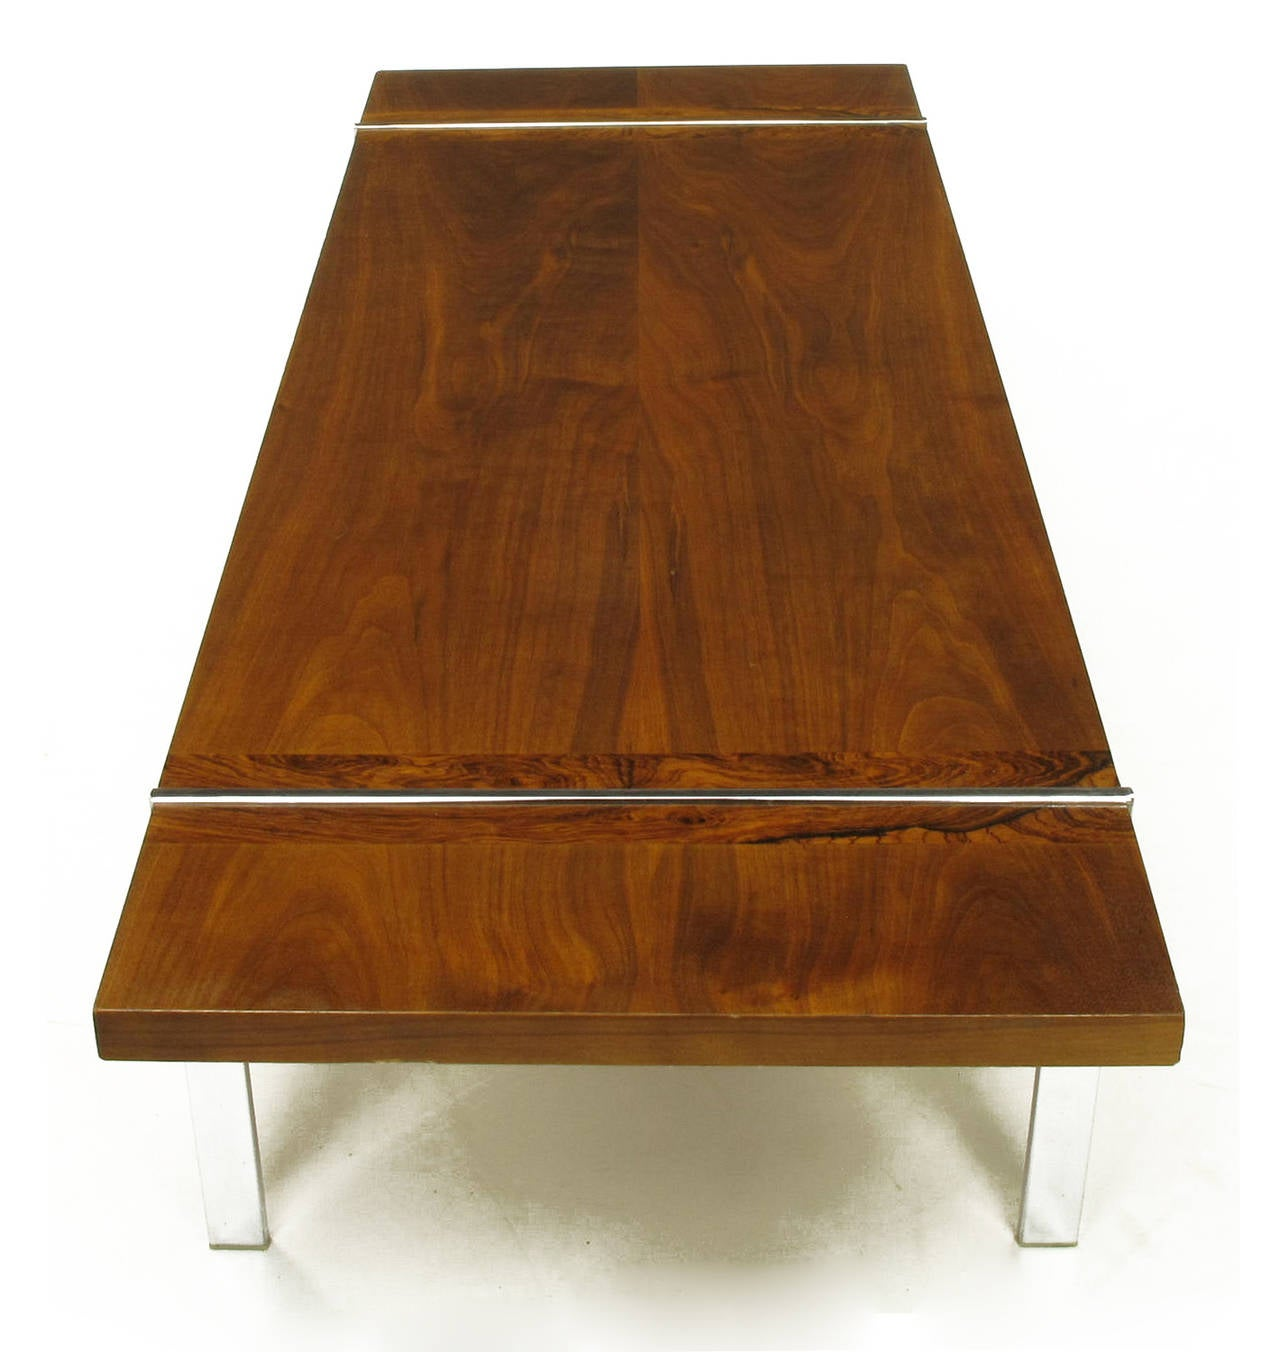 Park Lane Coffee Table: Chrome, Walnut And Rosewood Tripartite Coffee Table By